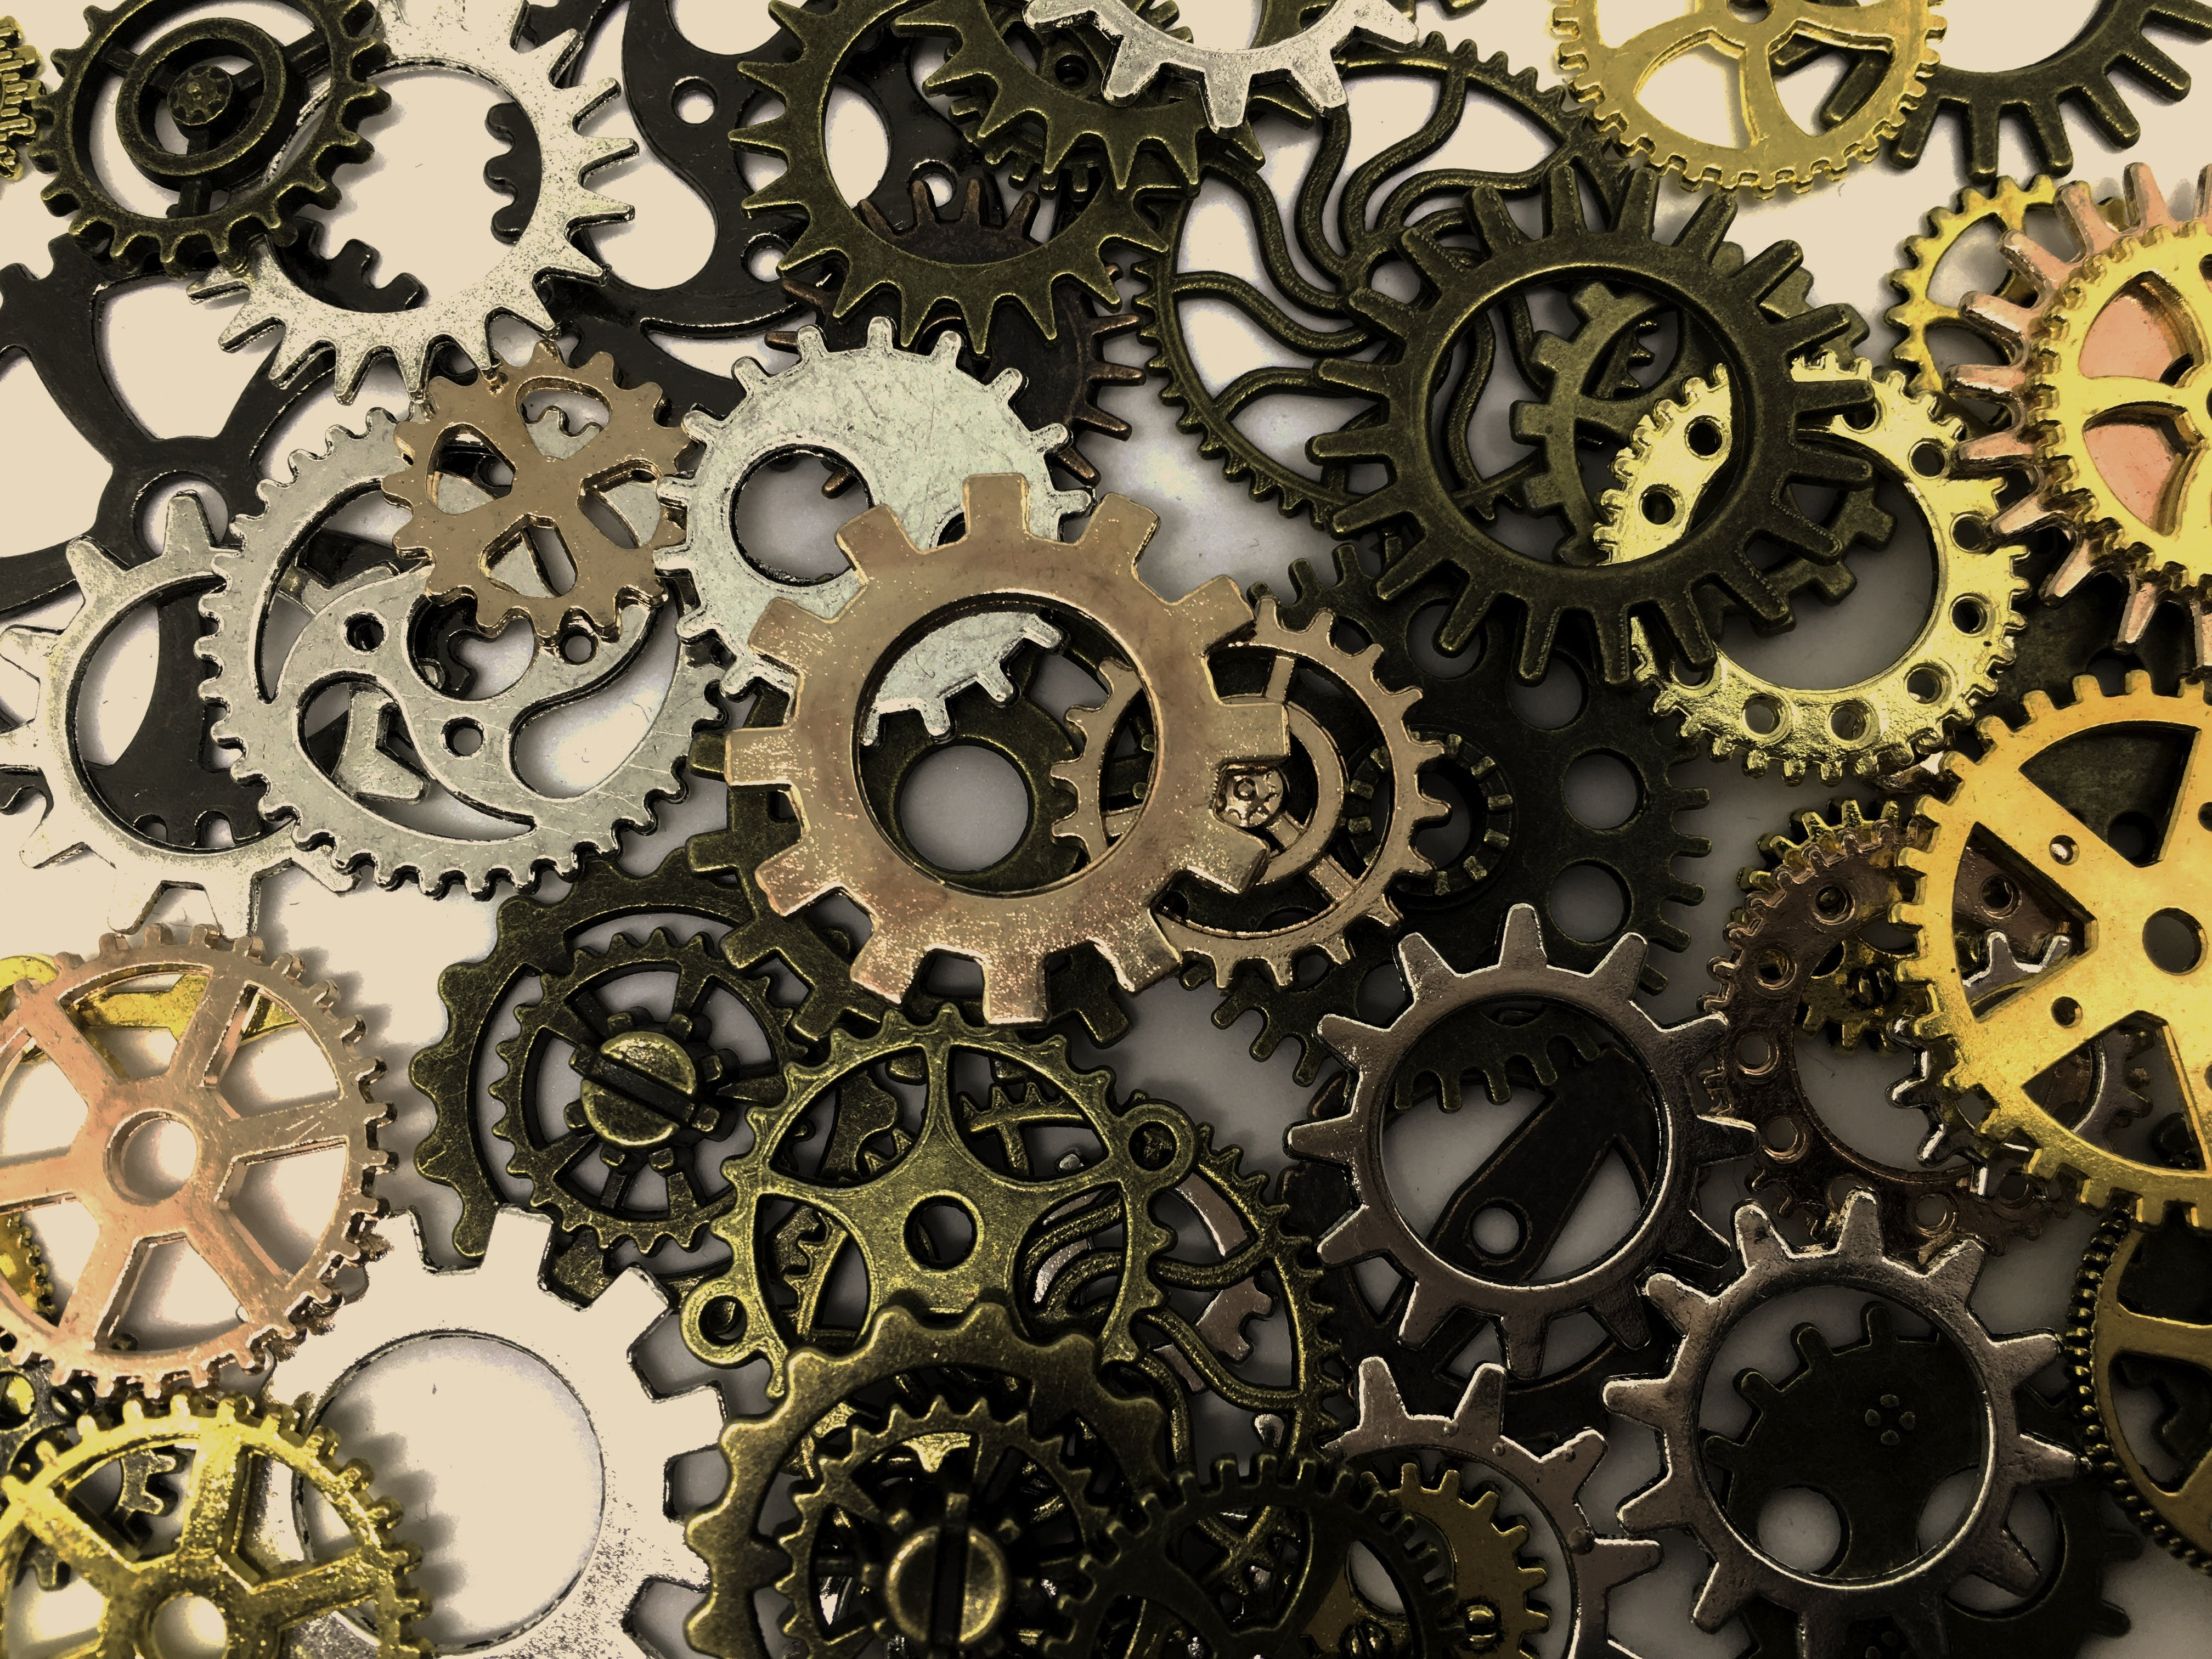 Assorted-color Gears